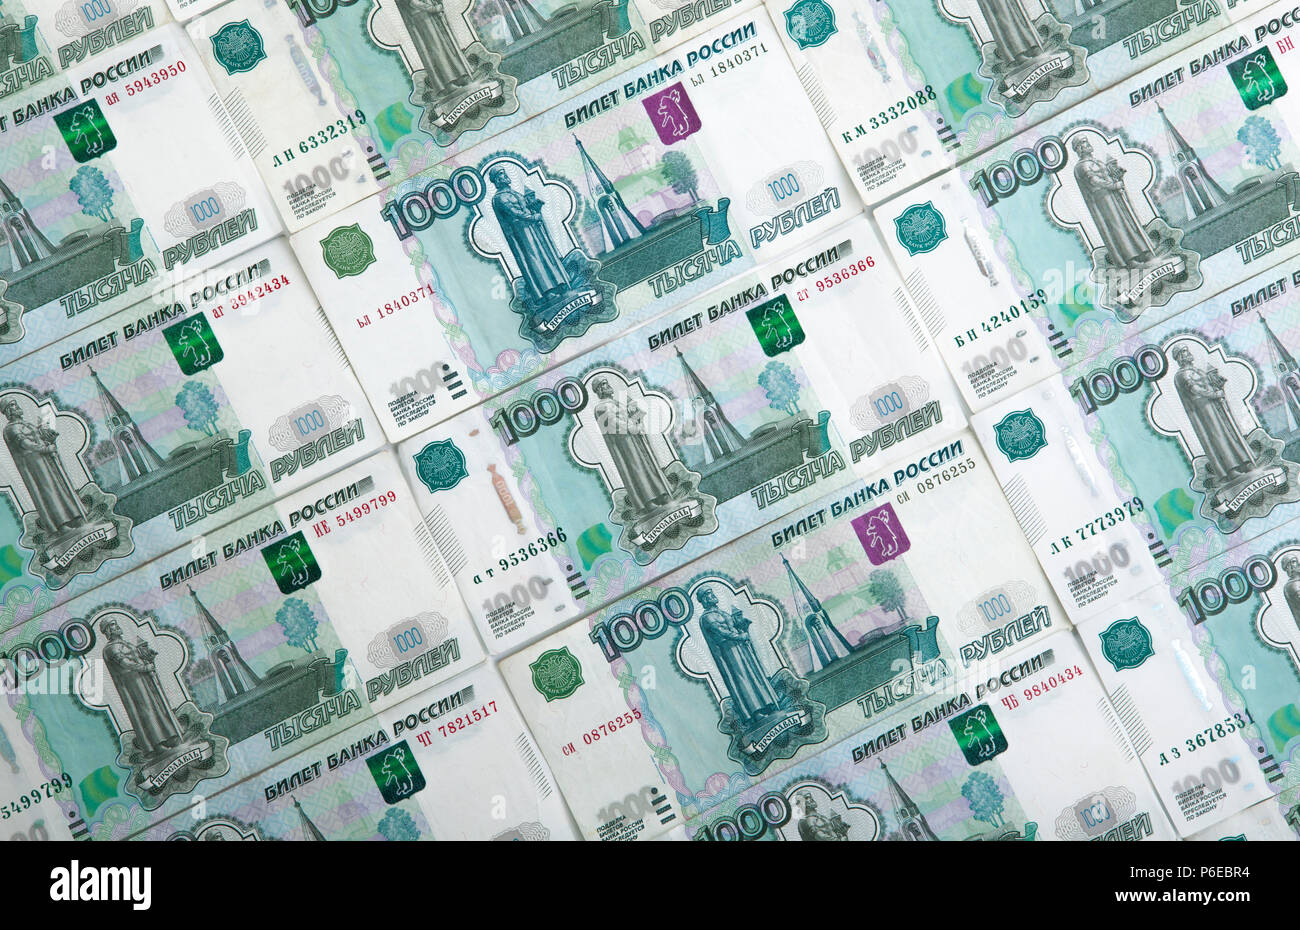 banknotes denominated 1000 rubles ranked in - Stock Image